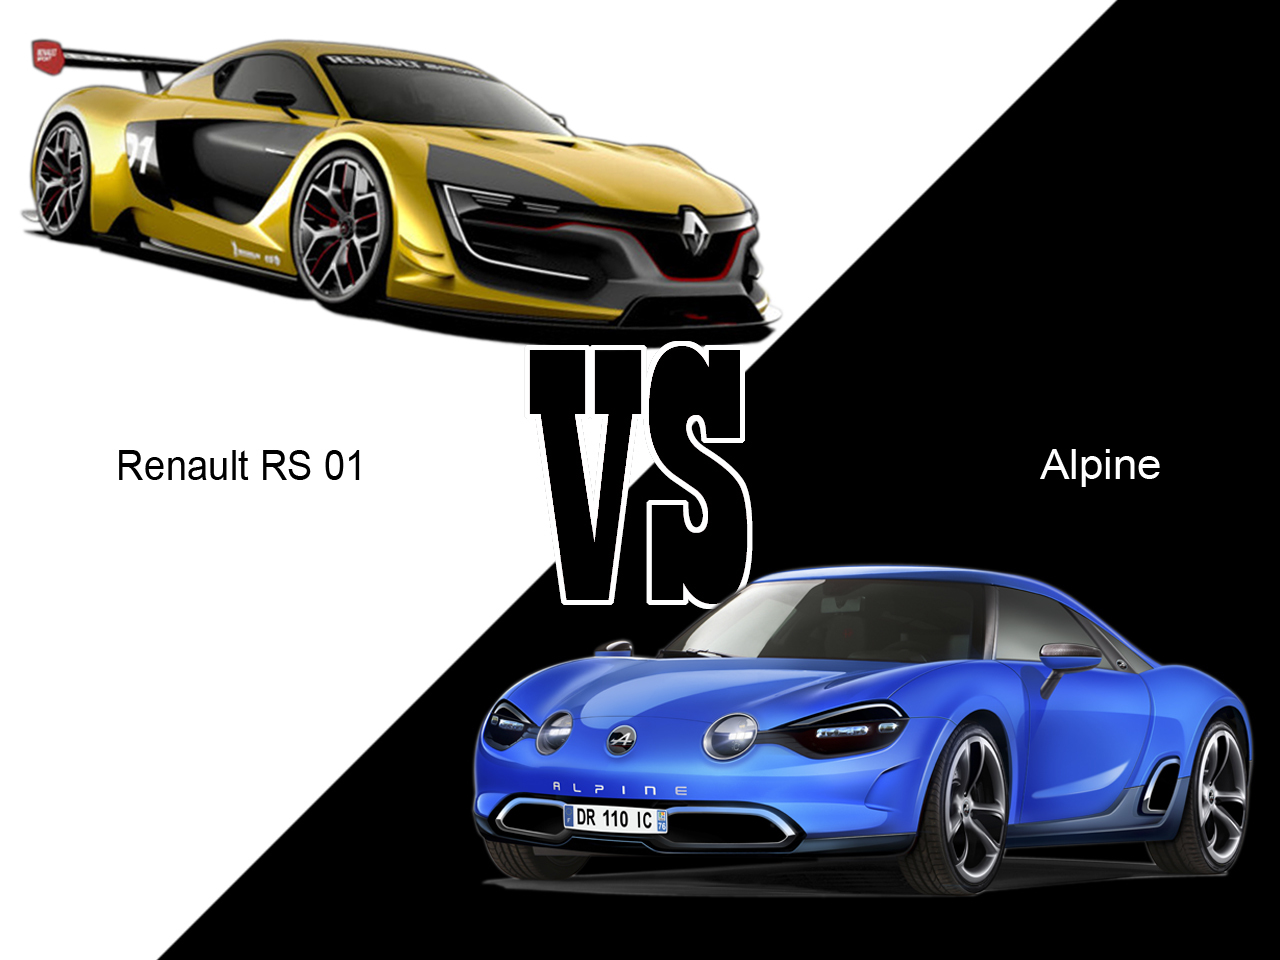 renault rs 01 vs alpine 2016 le match de l 39 image l 39 argus. Black Bedroom Furniture Sets. Home Design Ideas